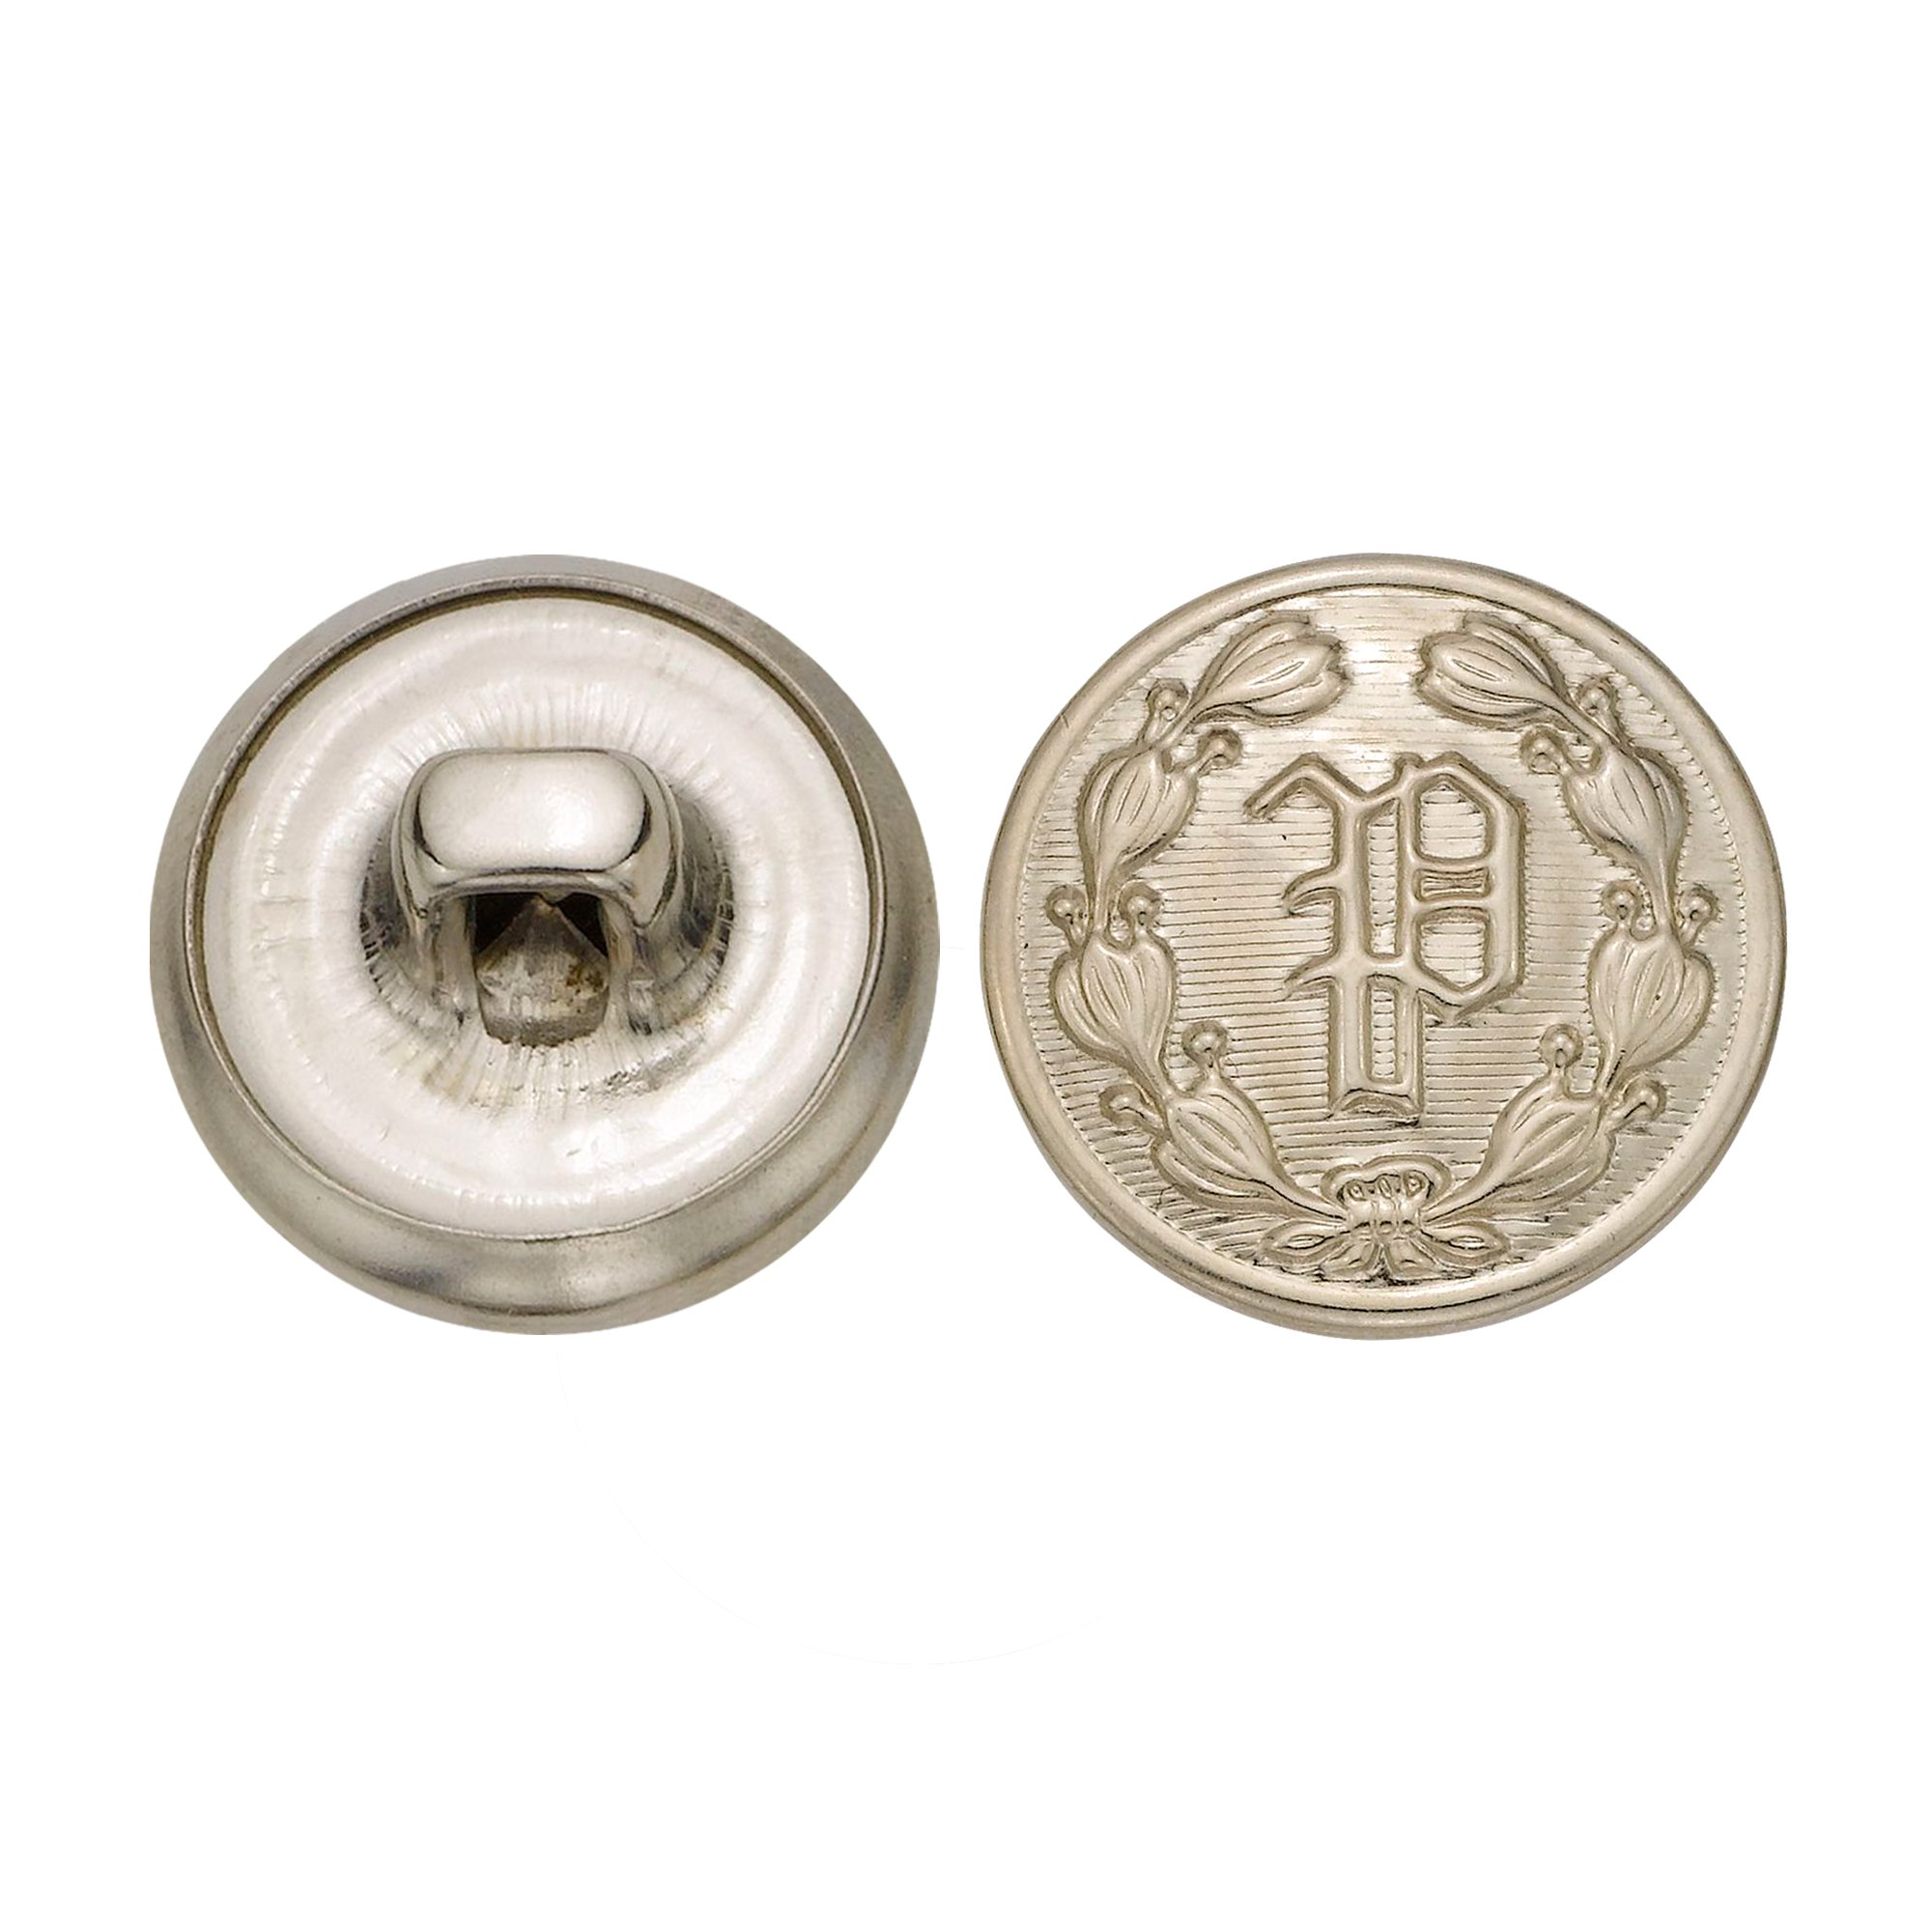 C&C Metal Products 5202 Police P Metal Button, Size 24 Ligne, Nickel, 72-Pack